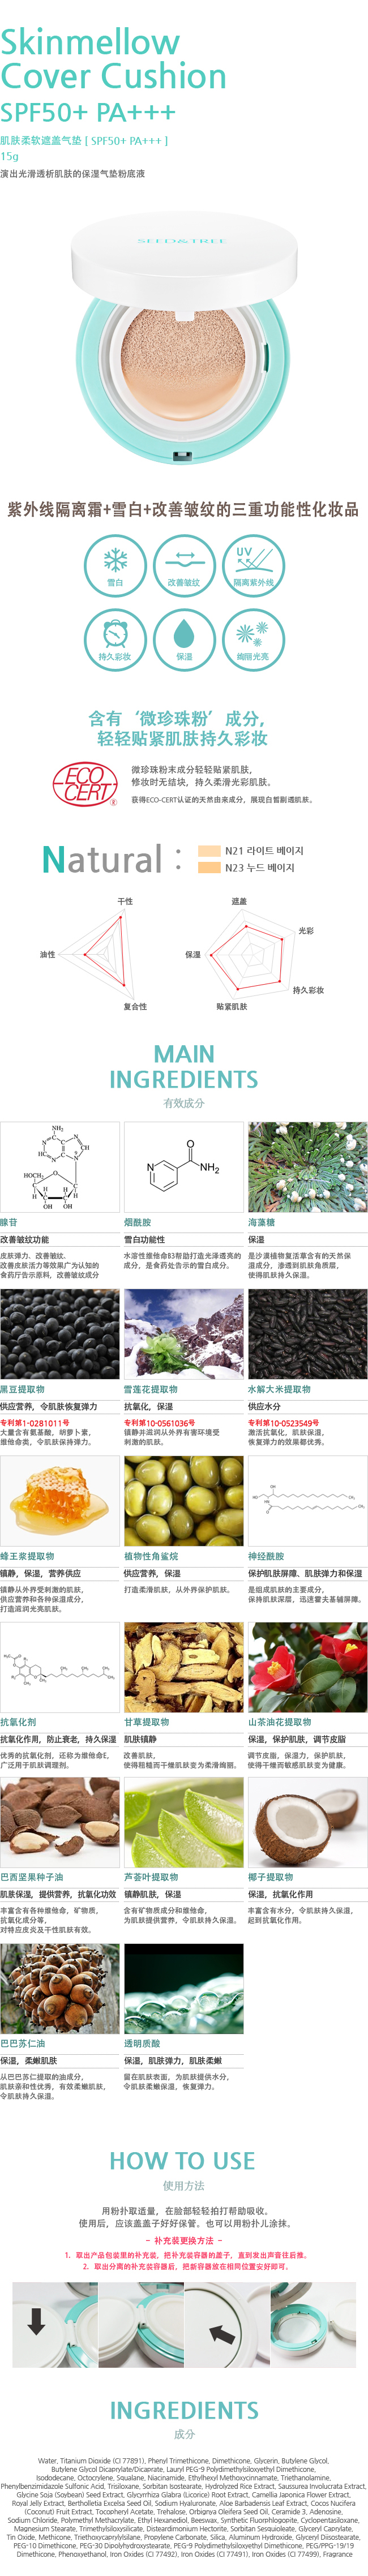 Credit: SEED & TREE China website